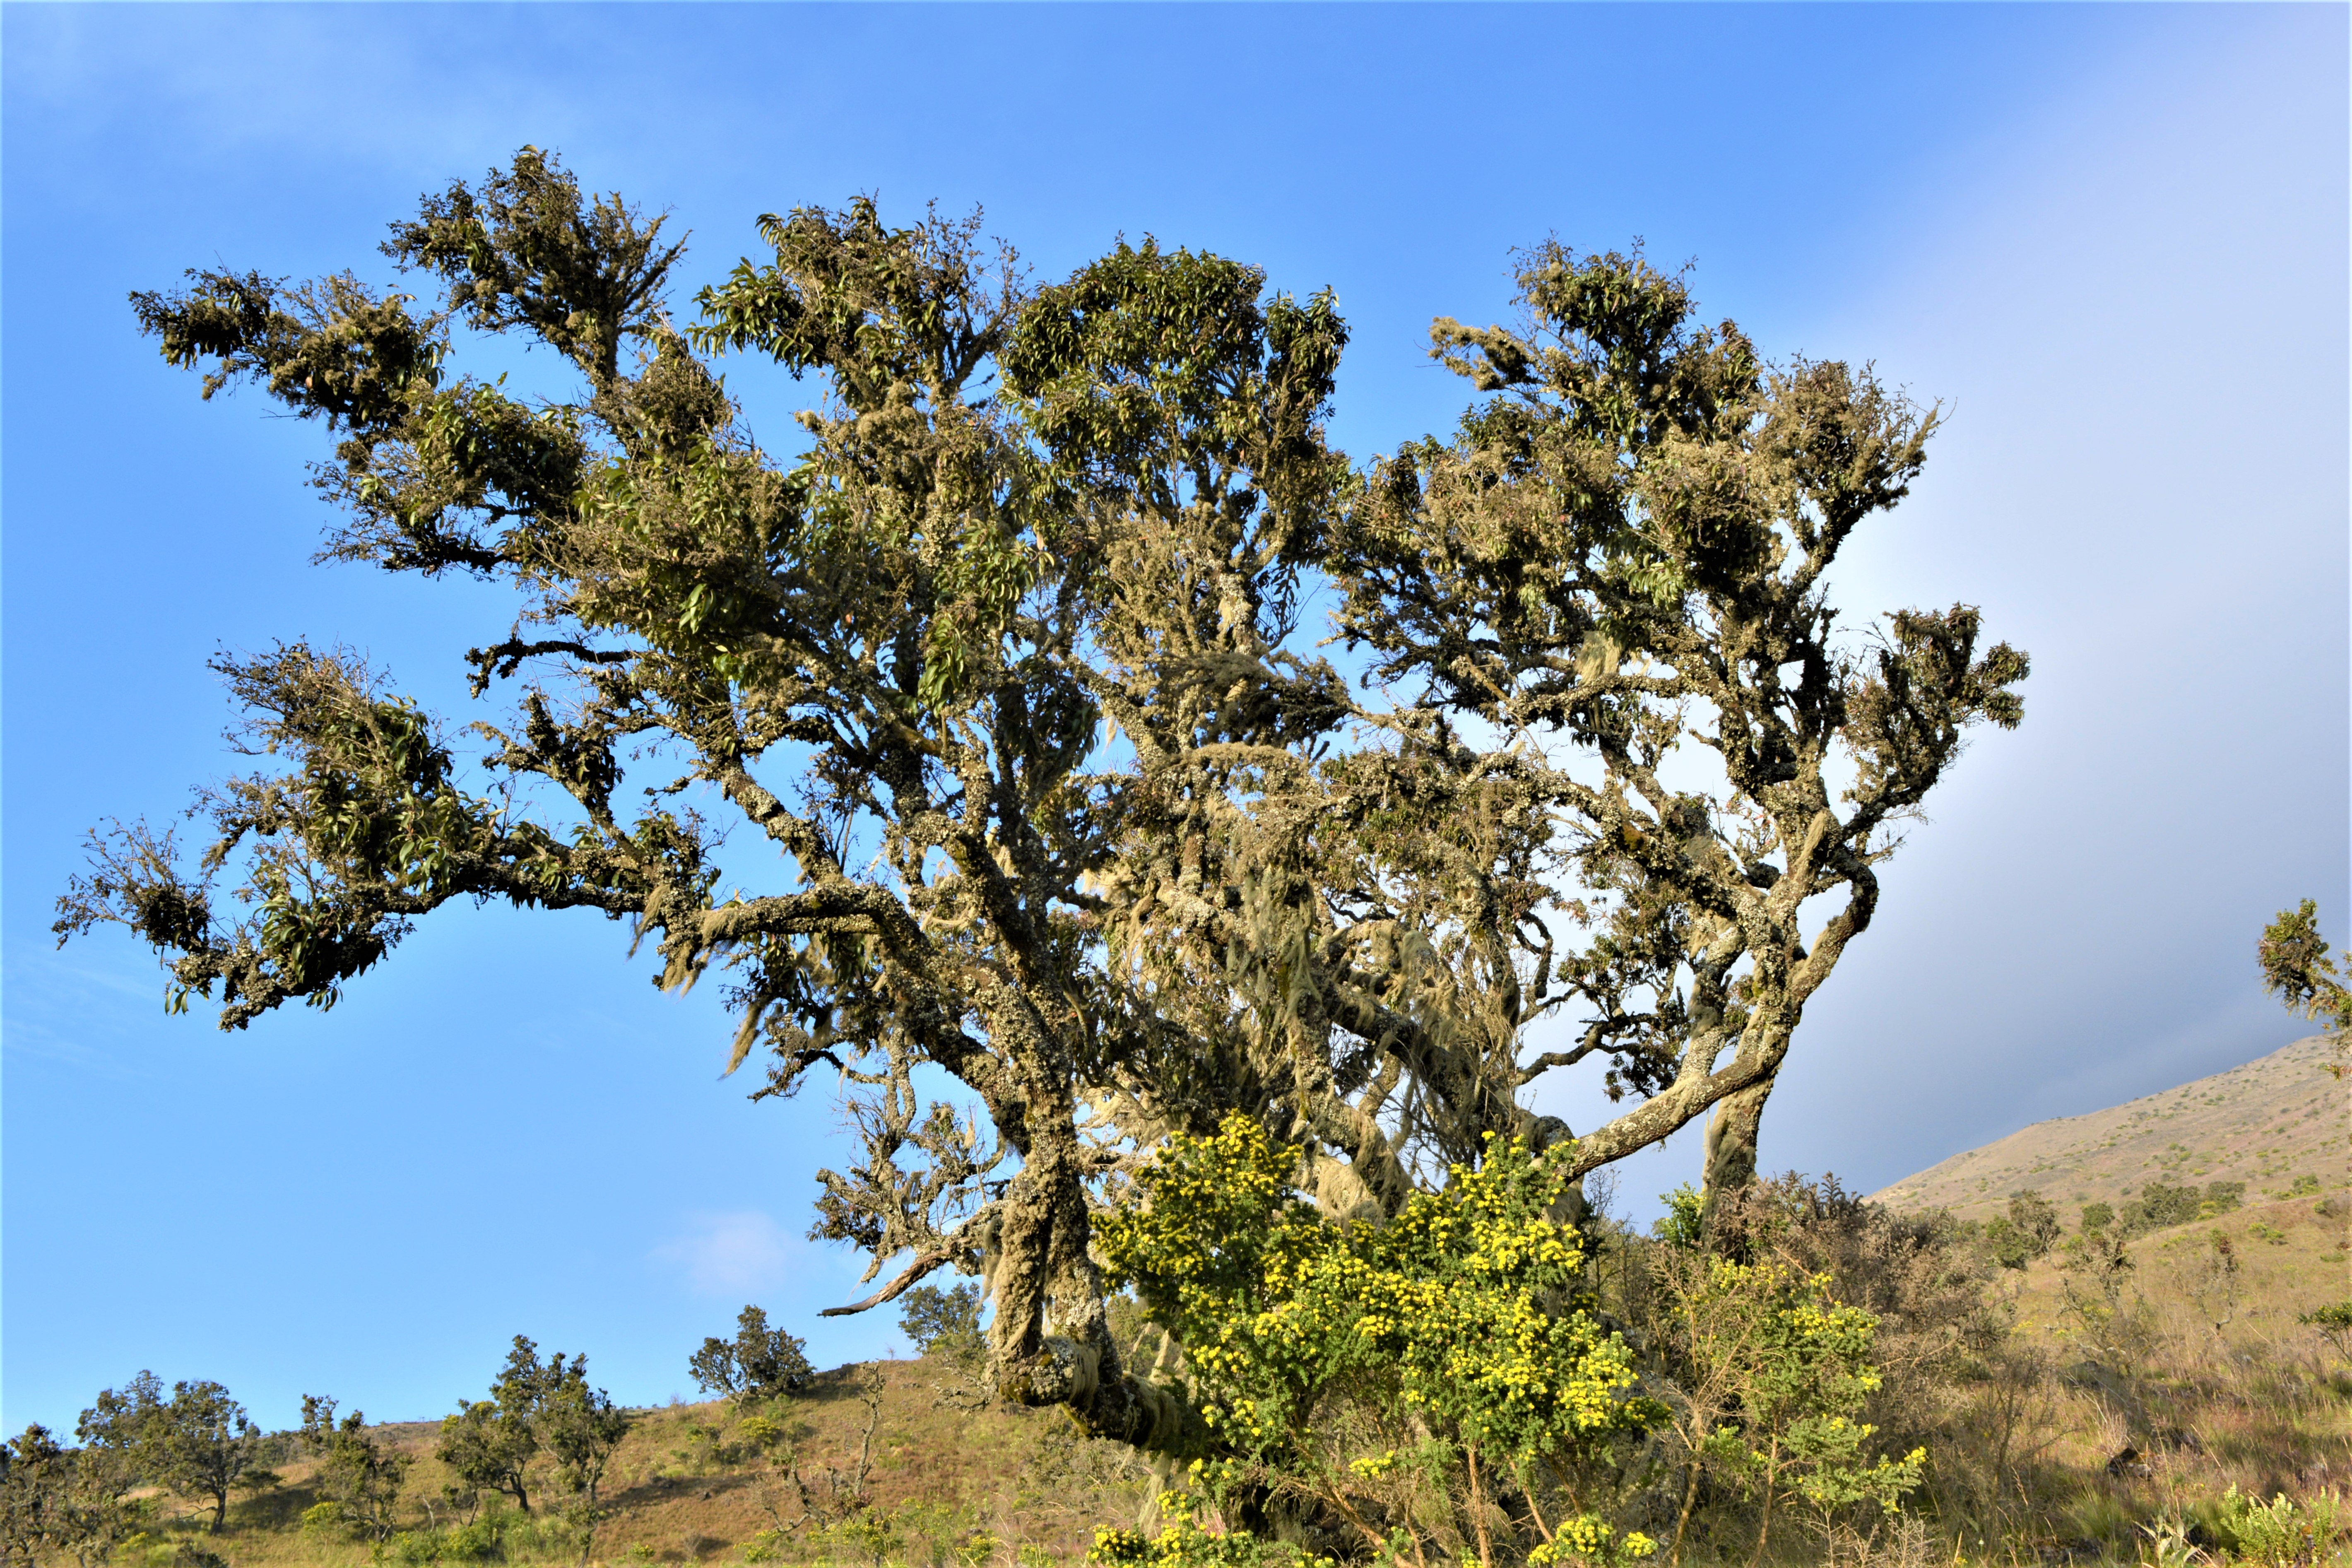 mt-cameroon-day-two-trees